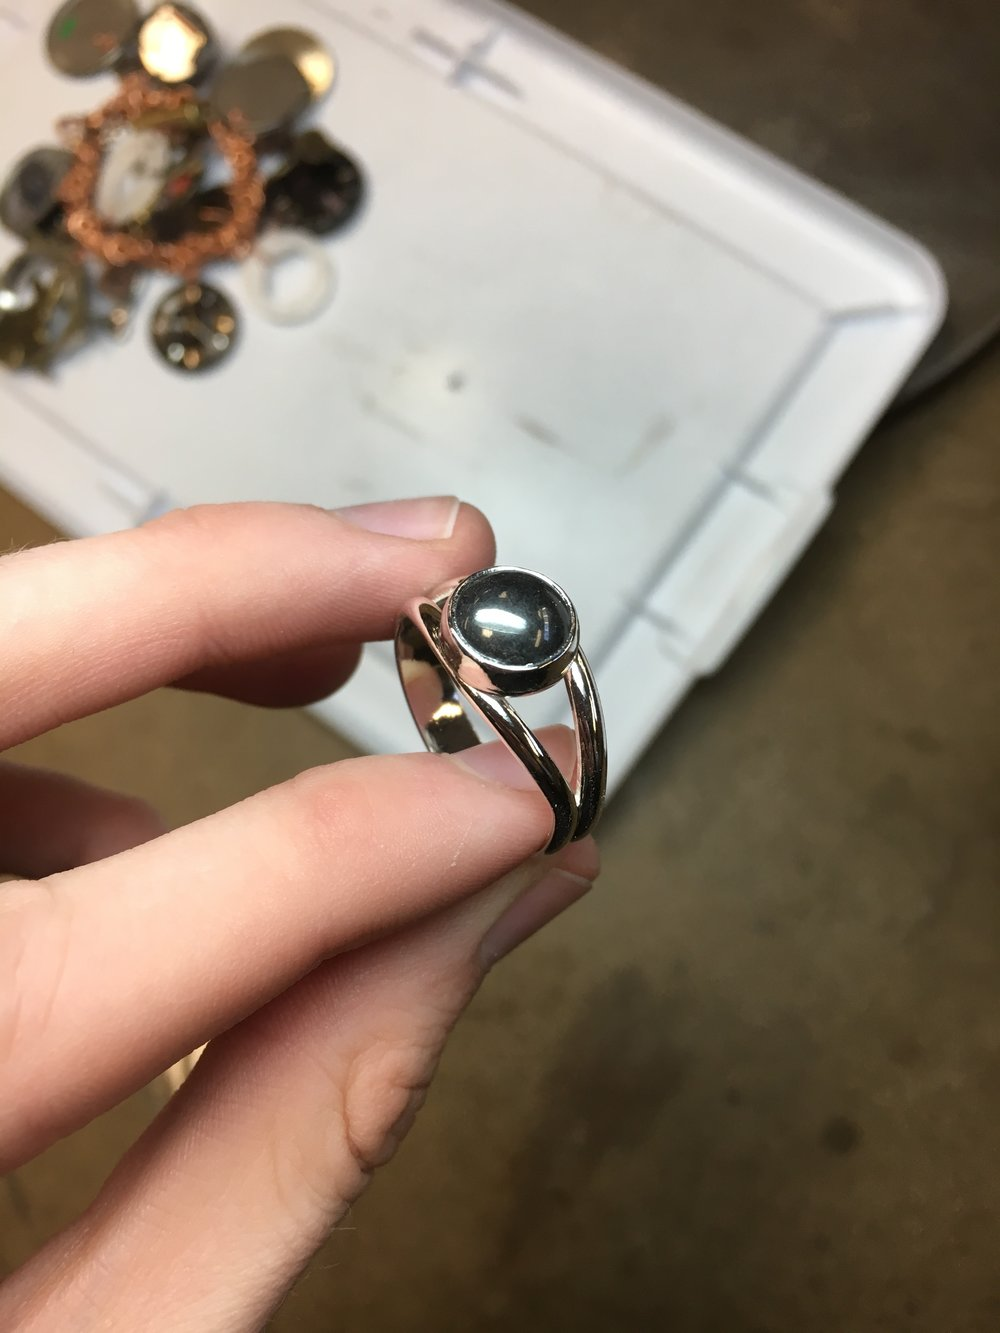 My second ring came out much cleaner!